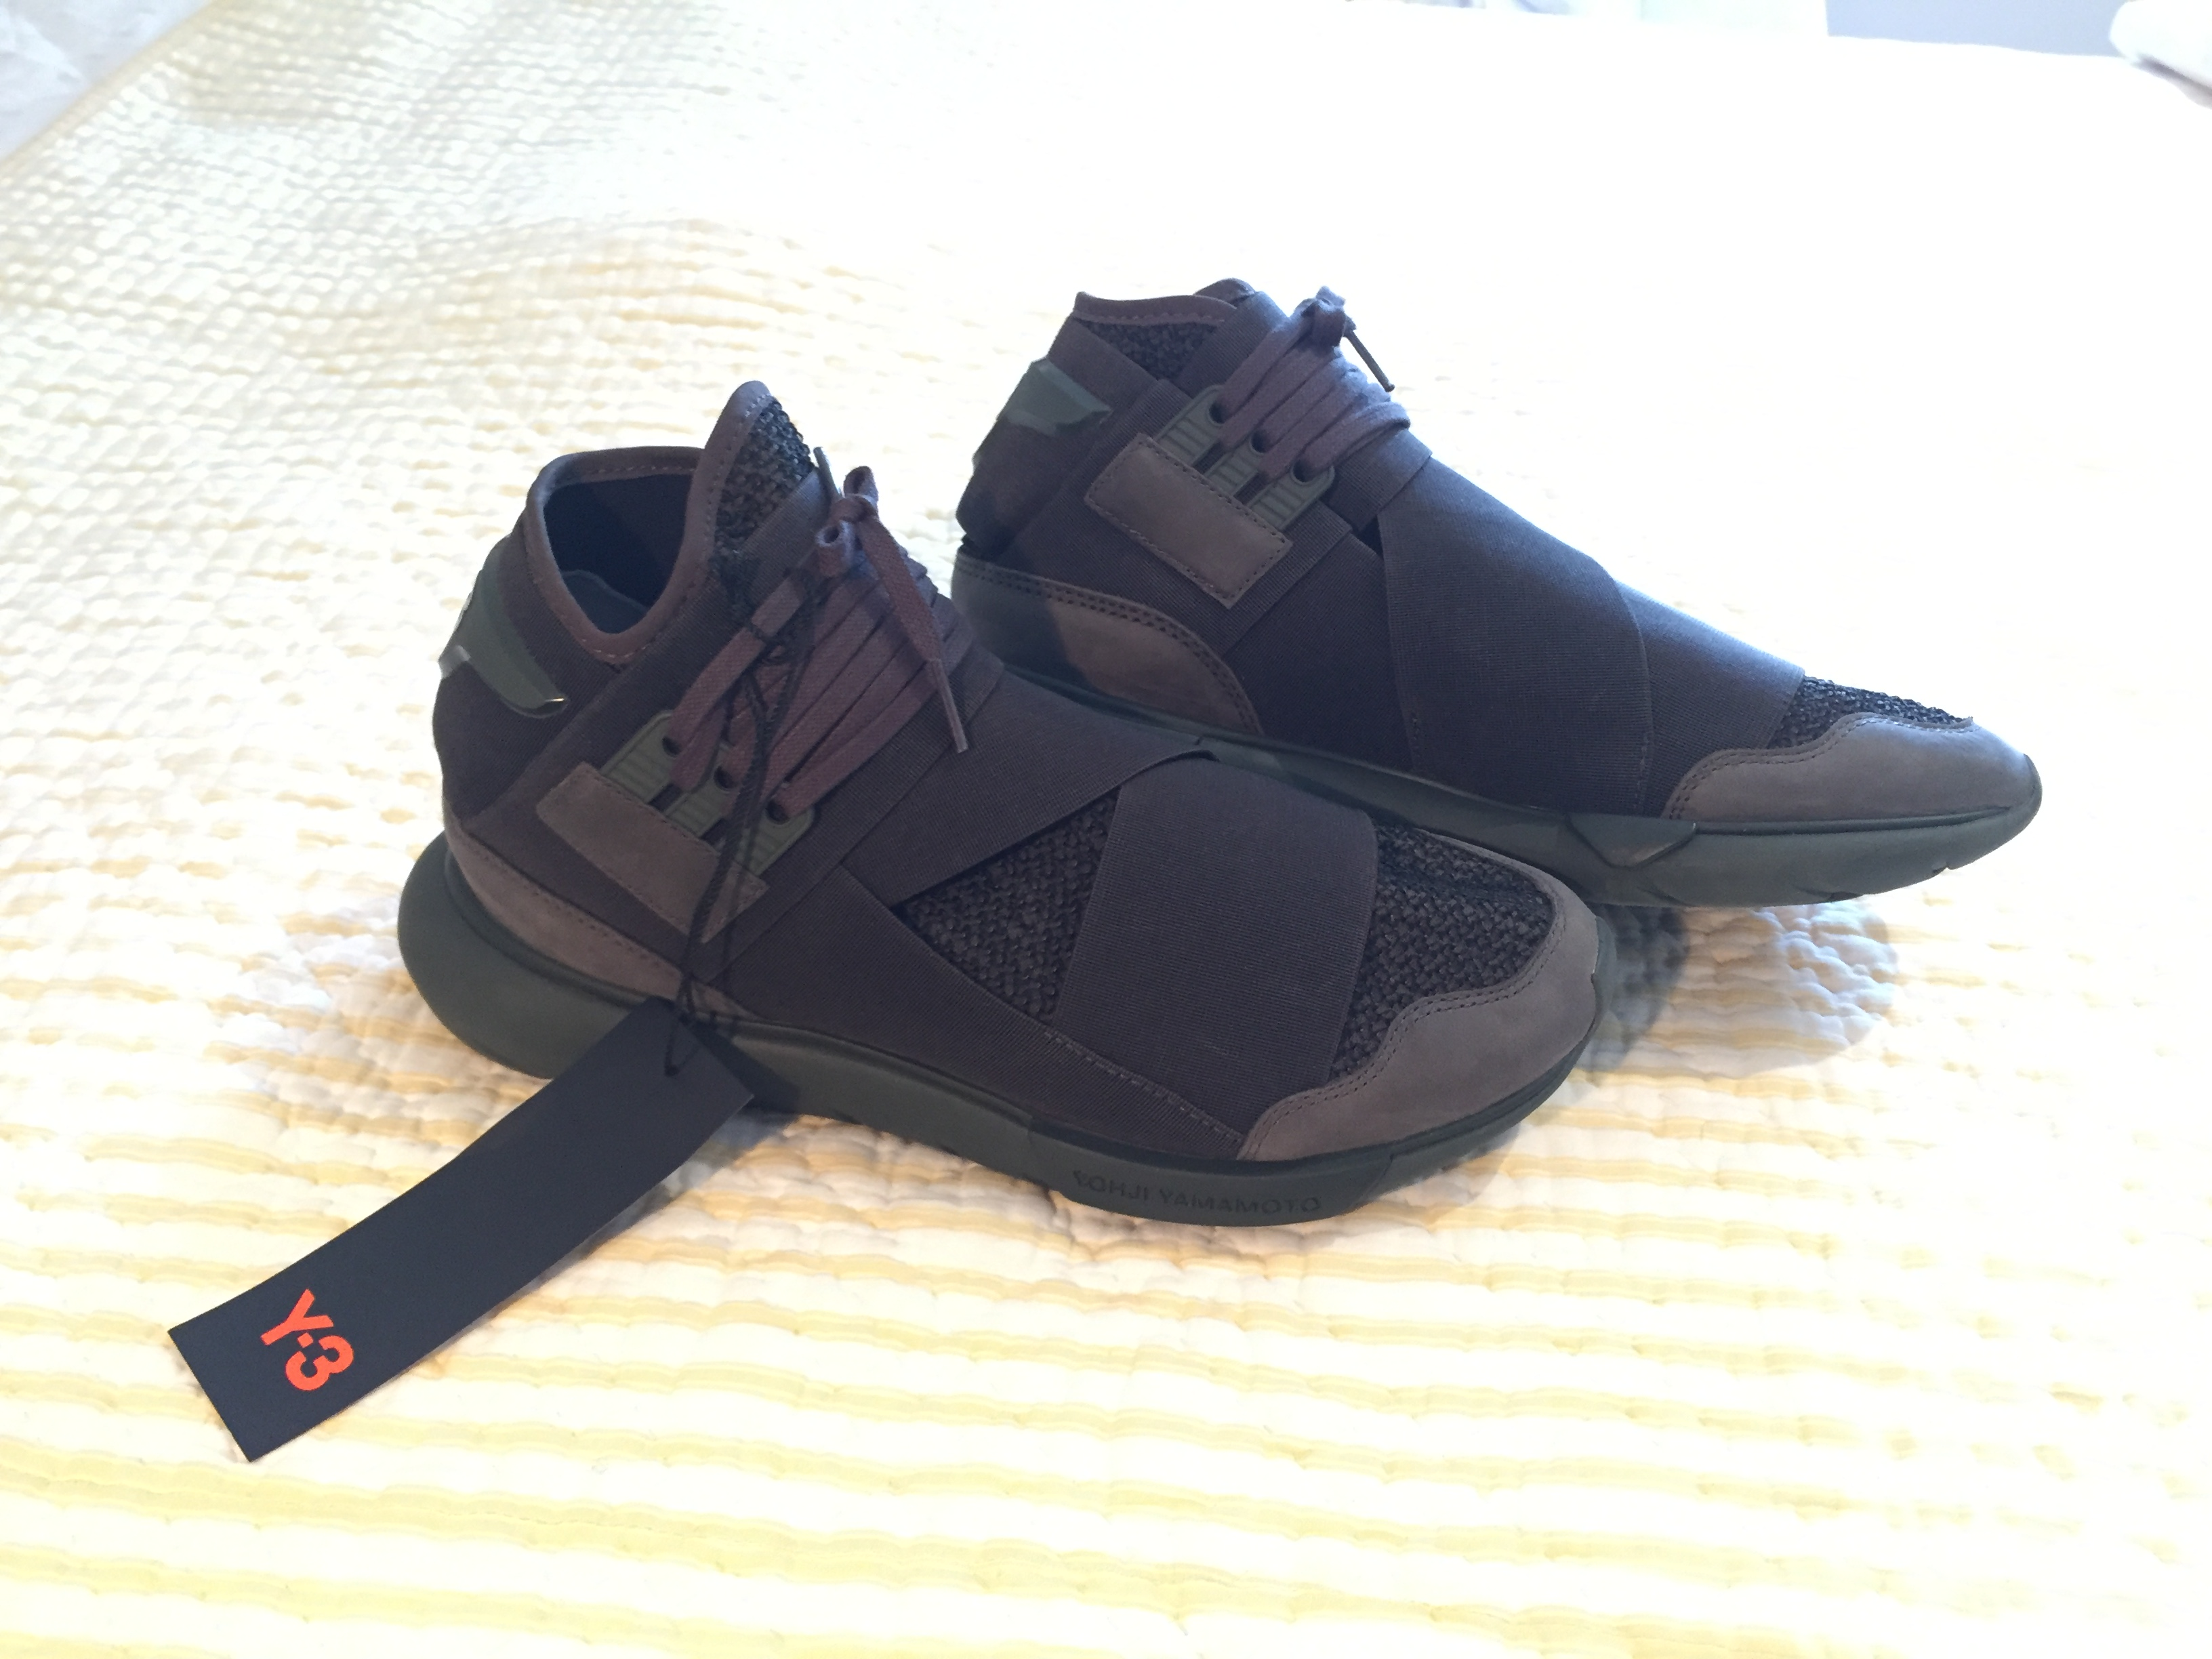 bd571e80f Y-3 Y-3 QASA HIGH   BLACK OLIVE CG3194 Size 8 - Hi-Top Sneakers for Sale -  Grailed